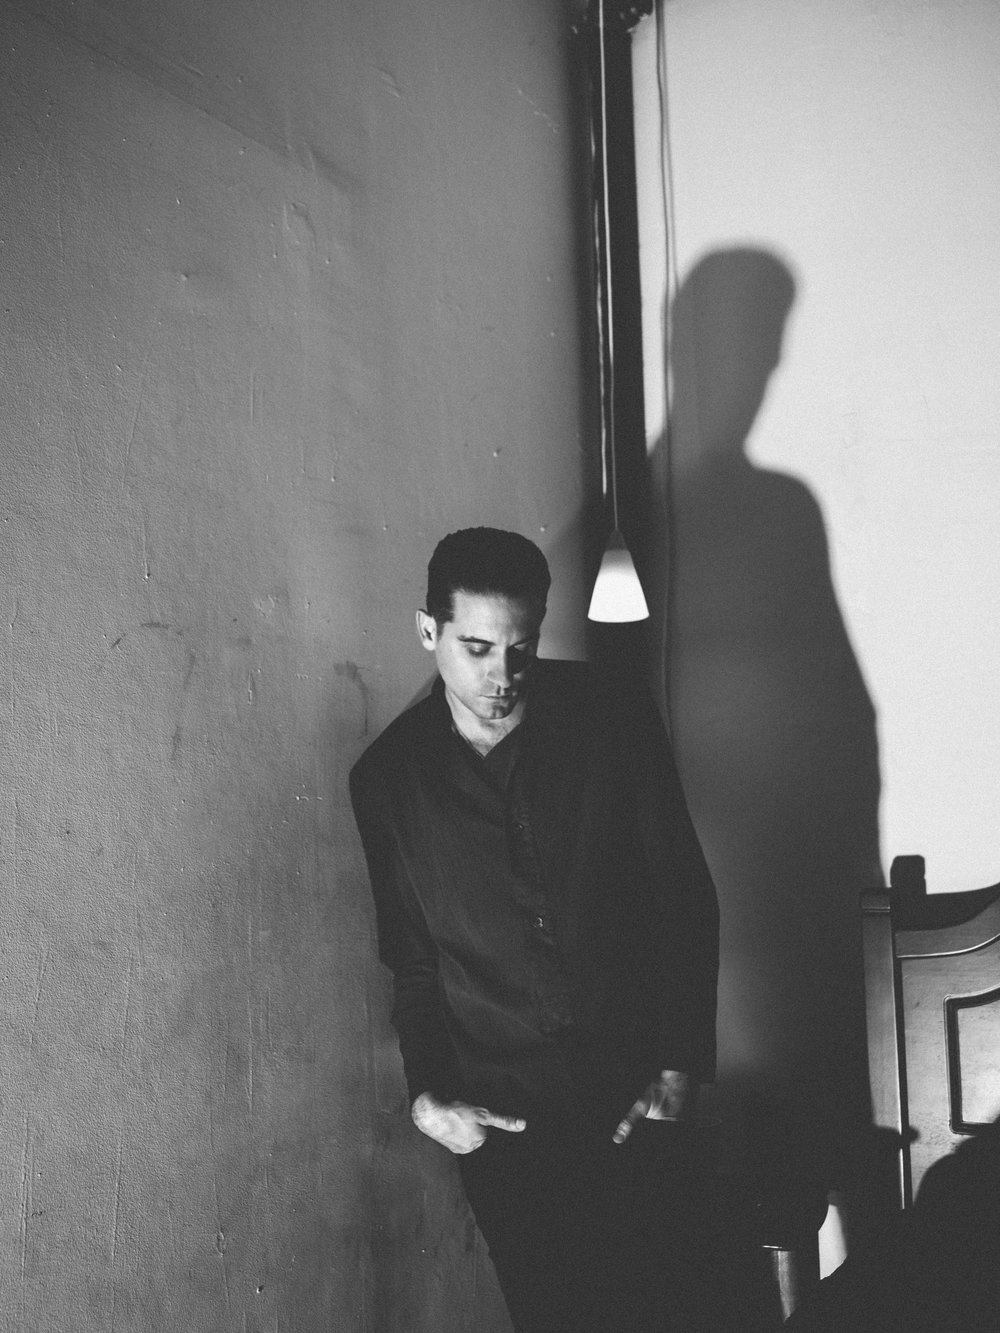 G-Eazy |  all photos by   Shane McCauley | Fashion credits:  ISSEY MIYAKE  shirt,  GUESS  pants,  SAINT LAURENT BY ANTHONY VACCARELLO  belt, and  CHROME HEARTS  necklace.